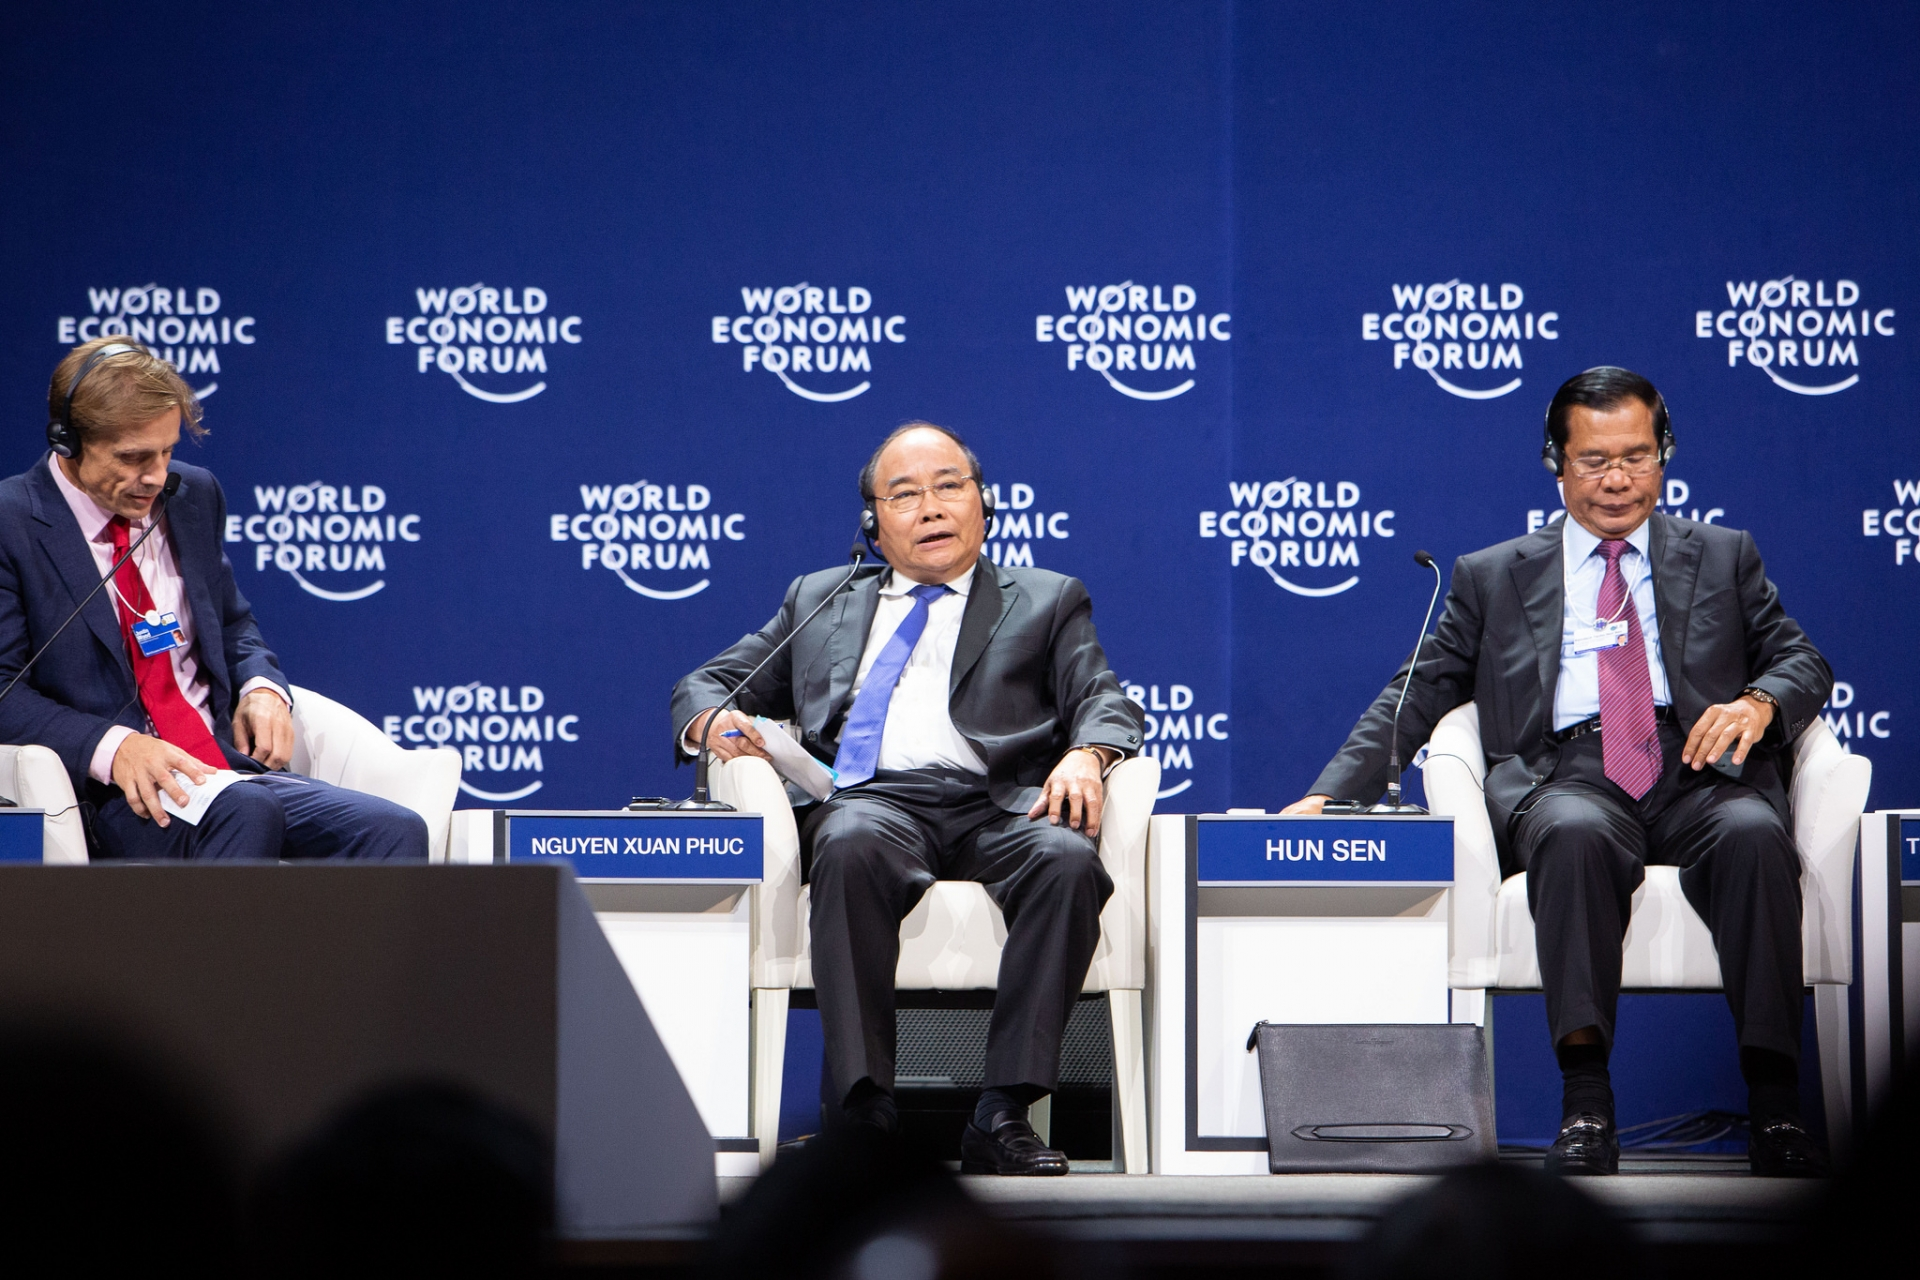 Mekong leaders envision a shared and prosperous future for the region